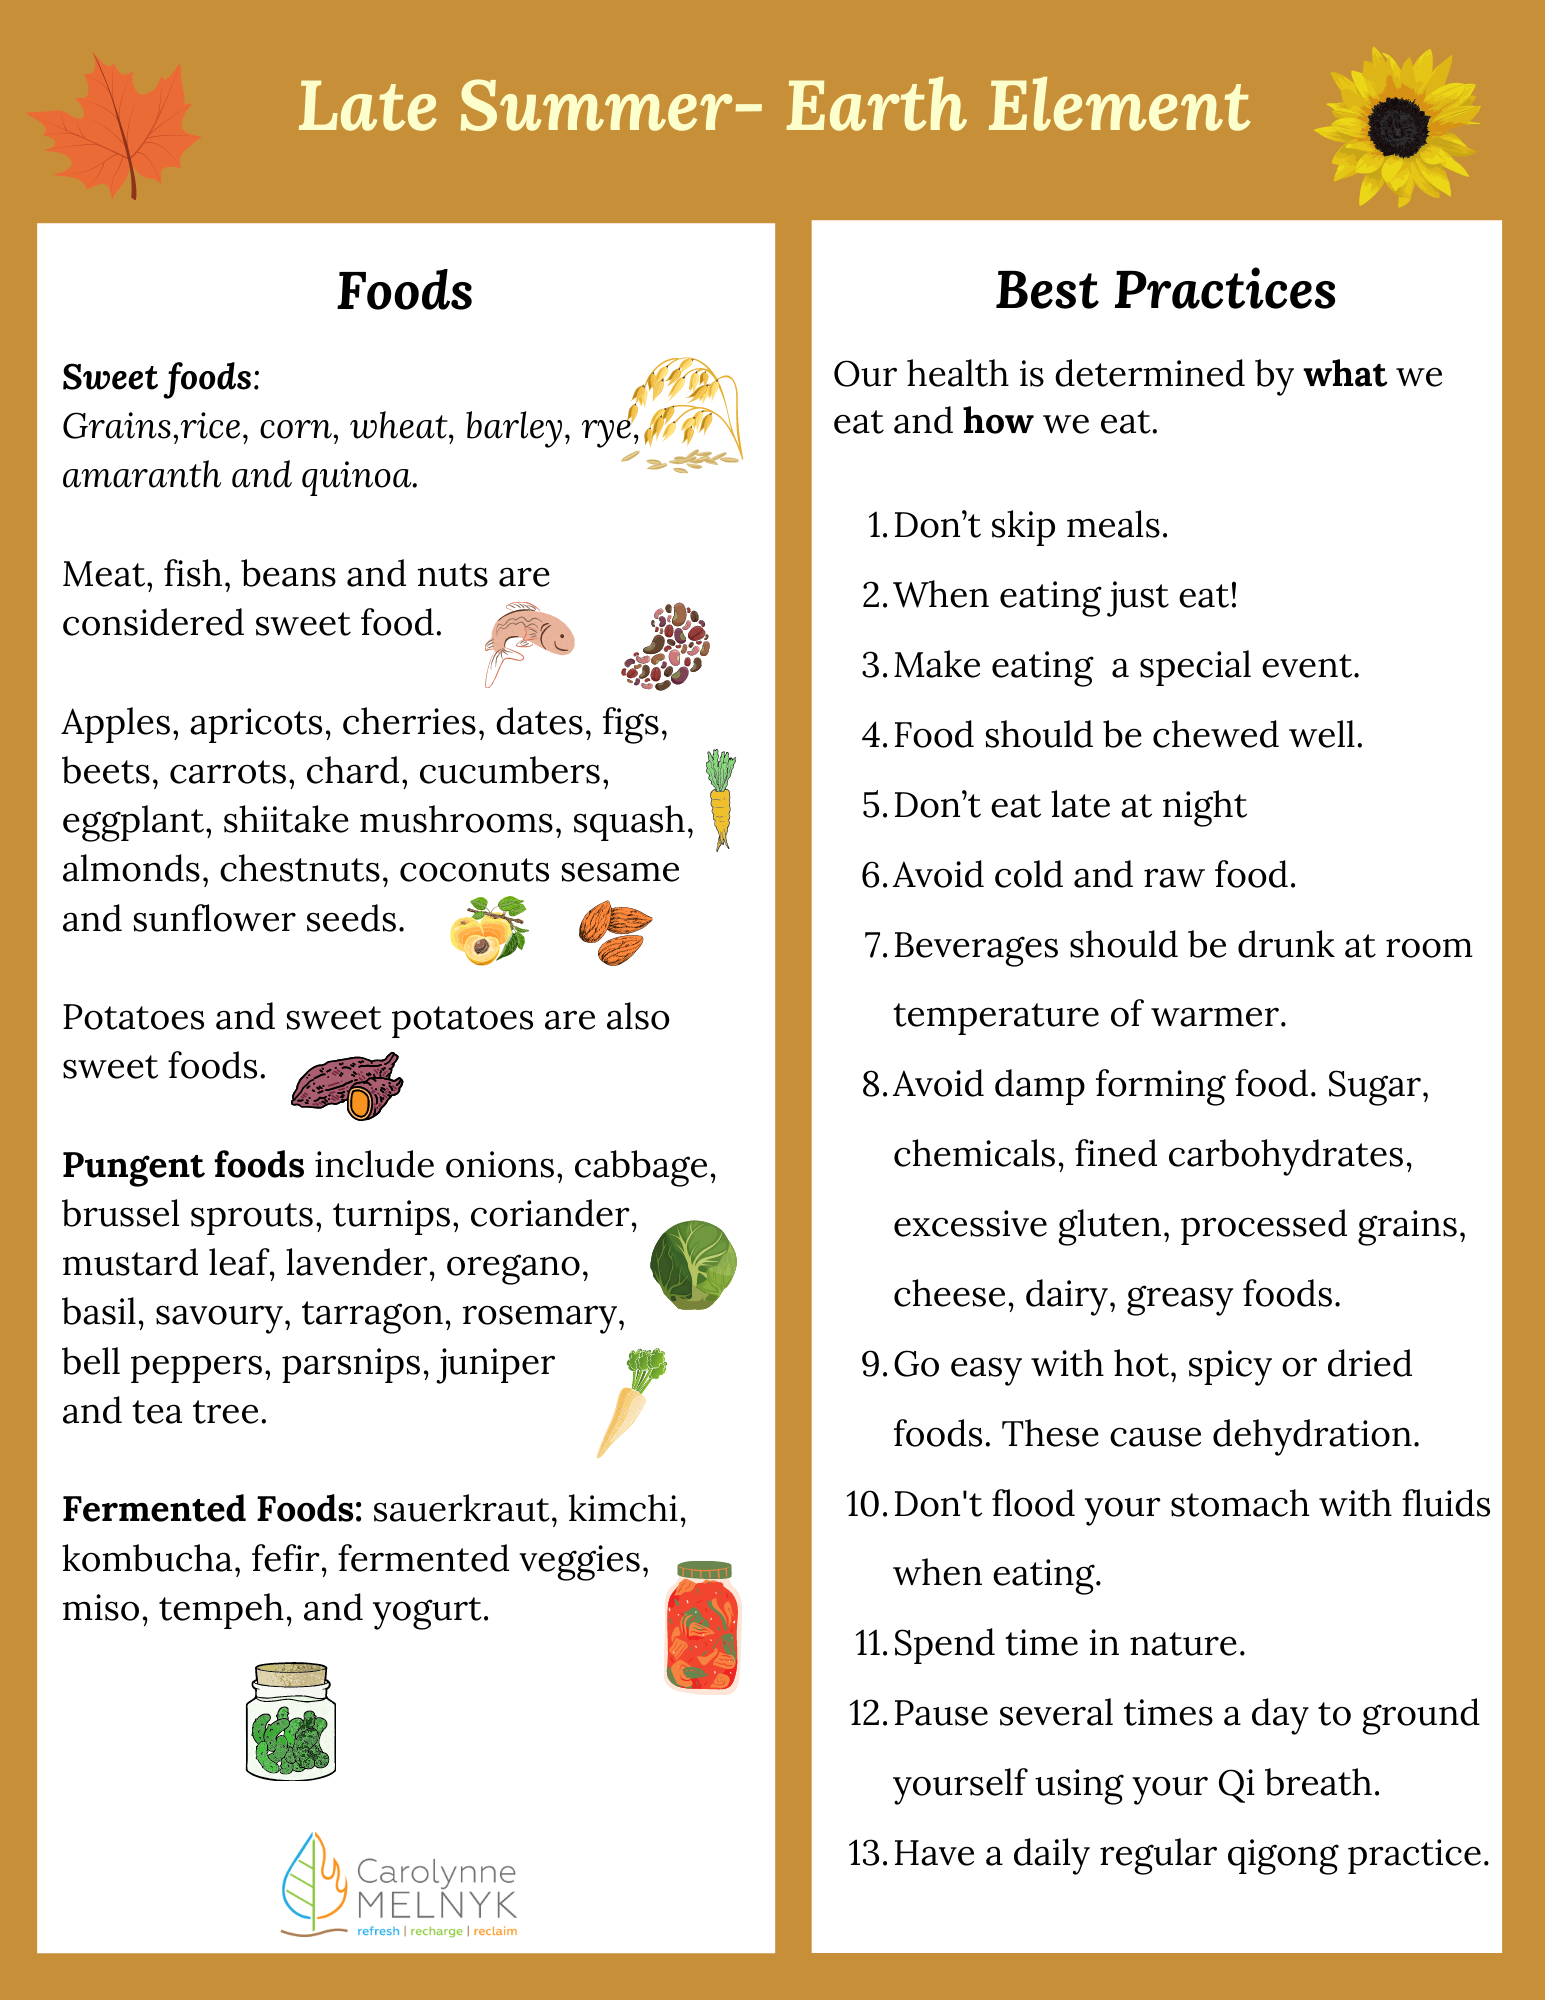 Late summer food/best practices